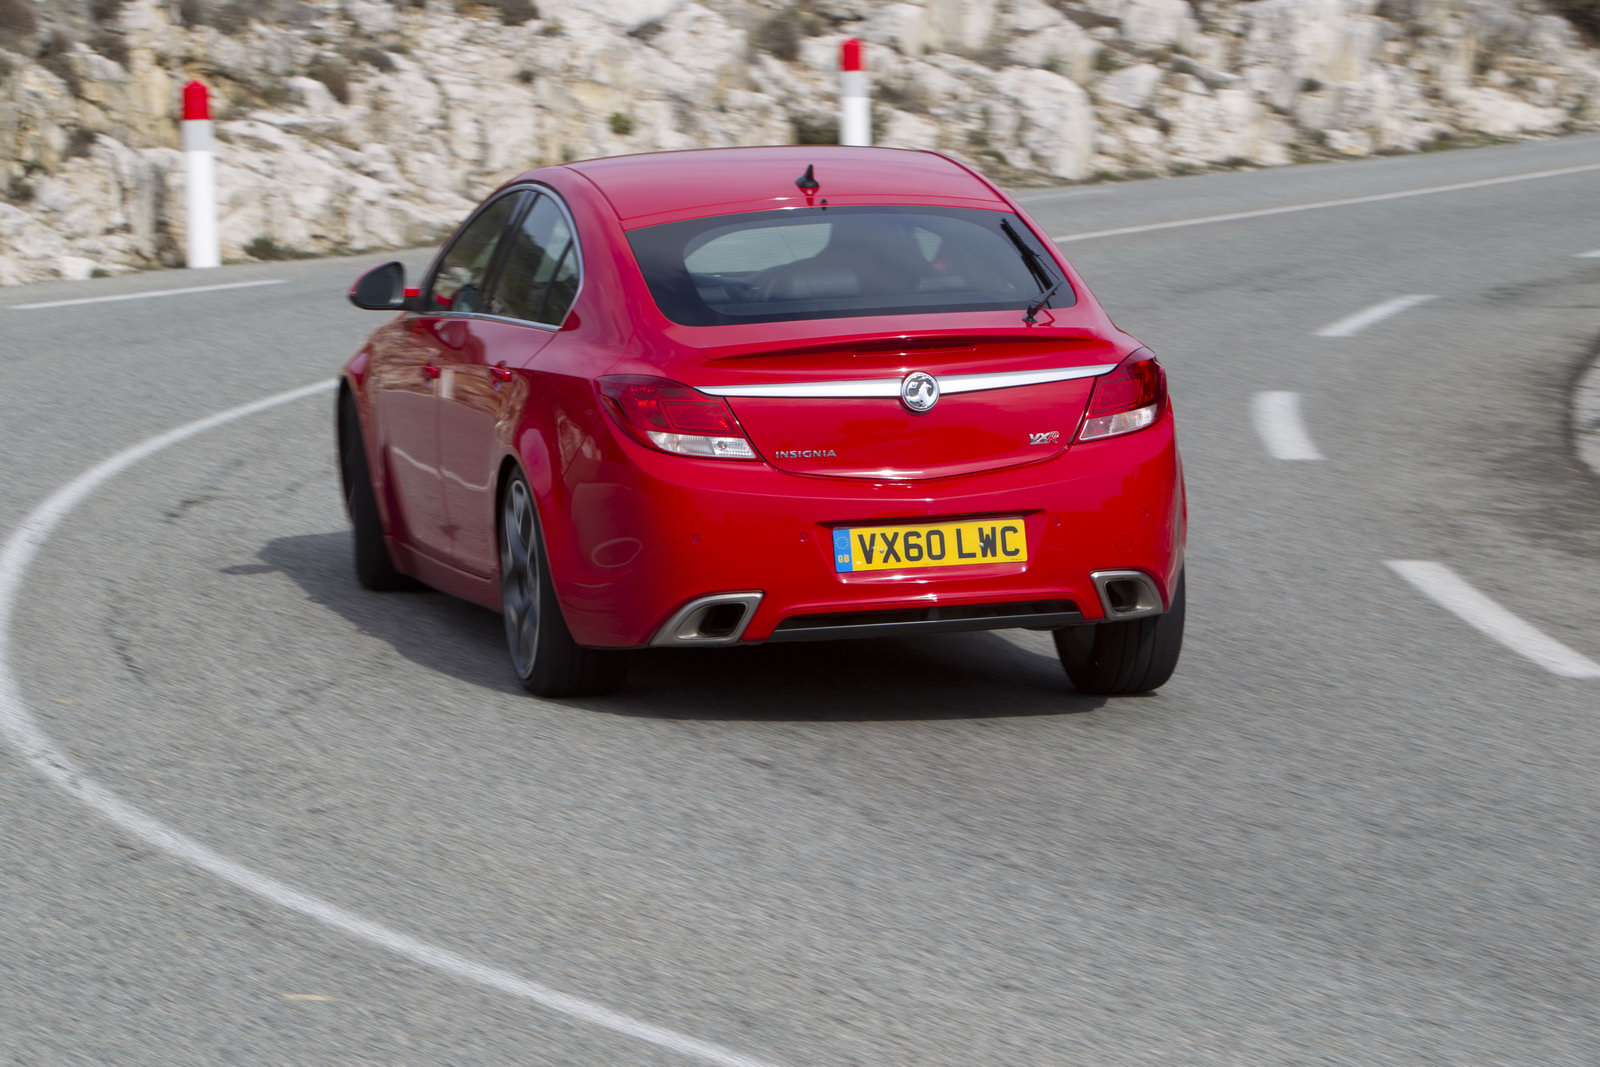 Vauxhall Insignia VXR 1 Unrestricted Vauxhall Insignia VXR with Energy Efficient Drive Train Kit